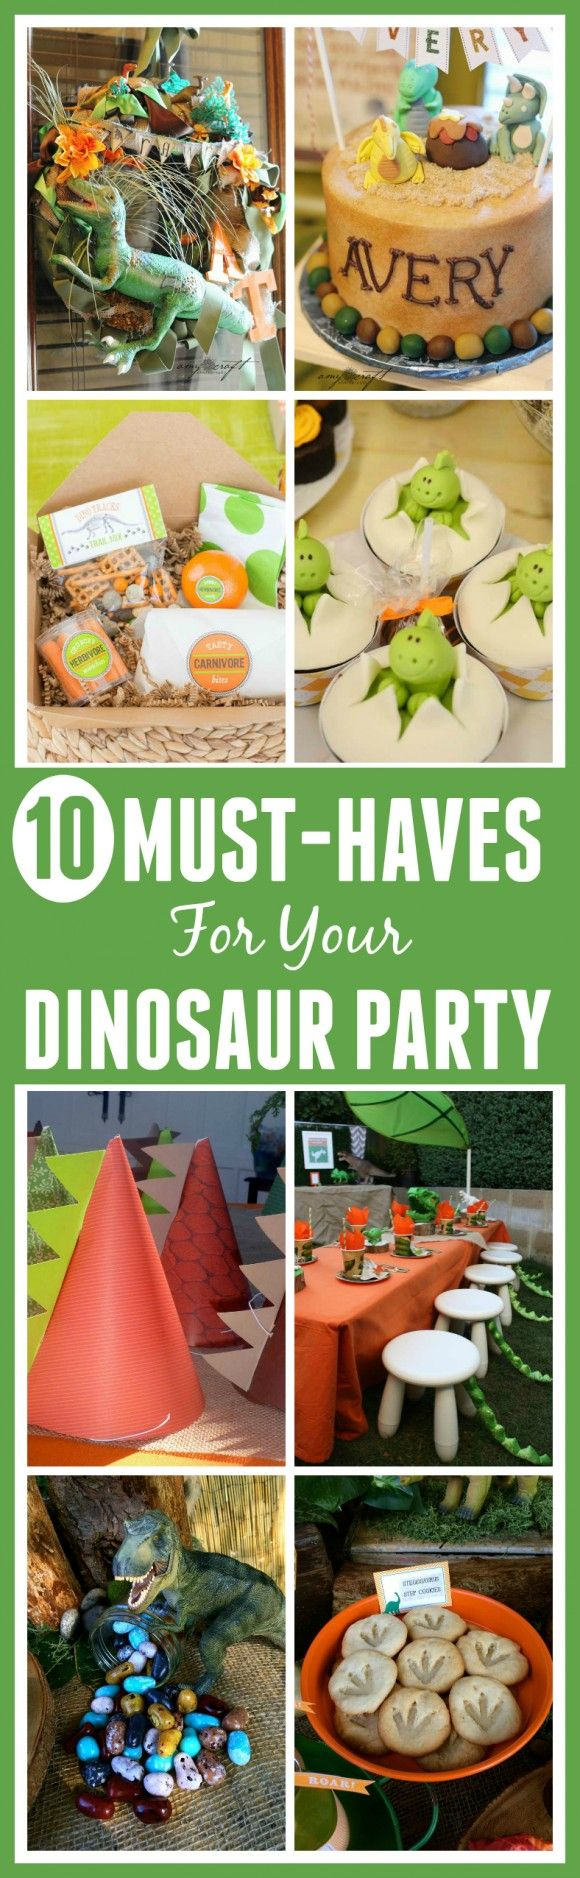 10 Must-Haves for your Dinosaur Party